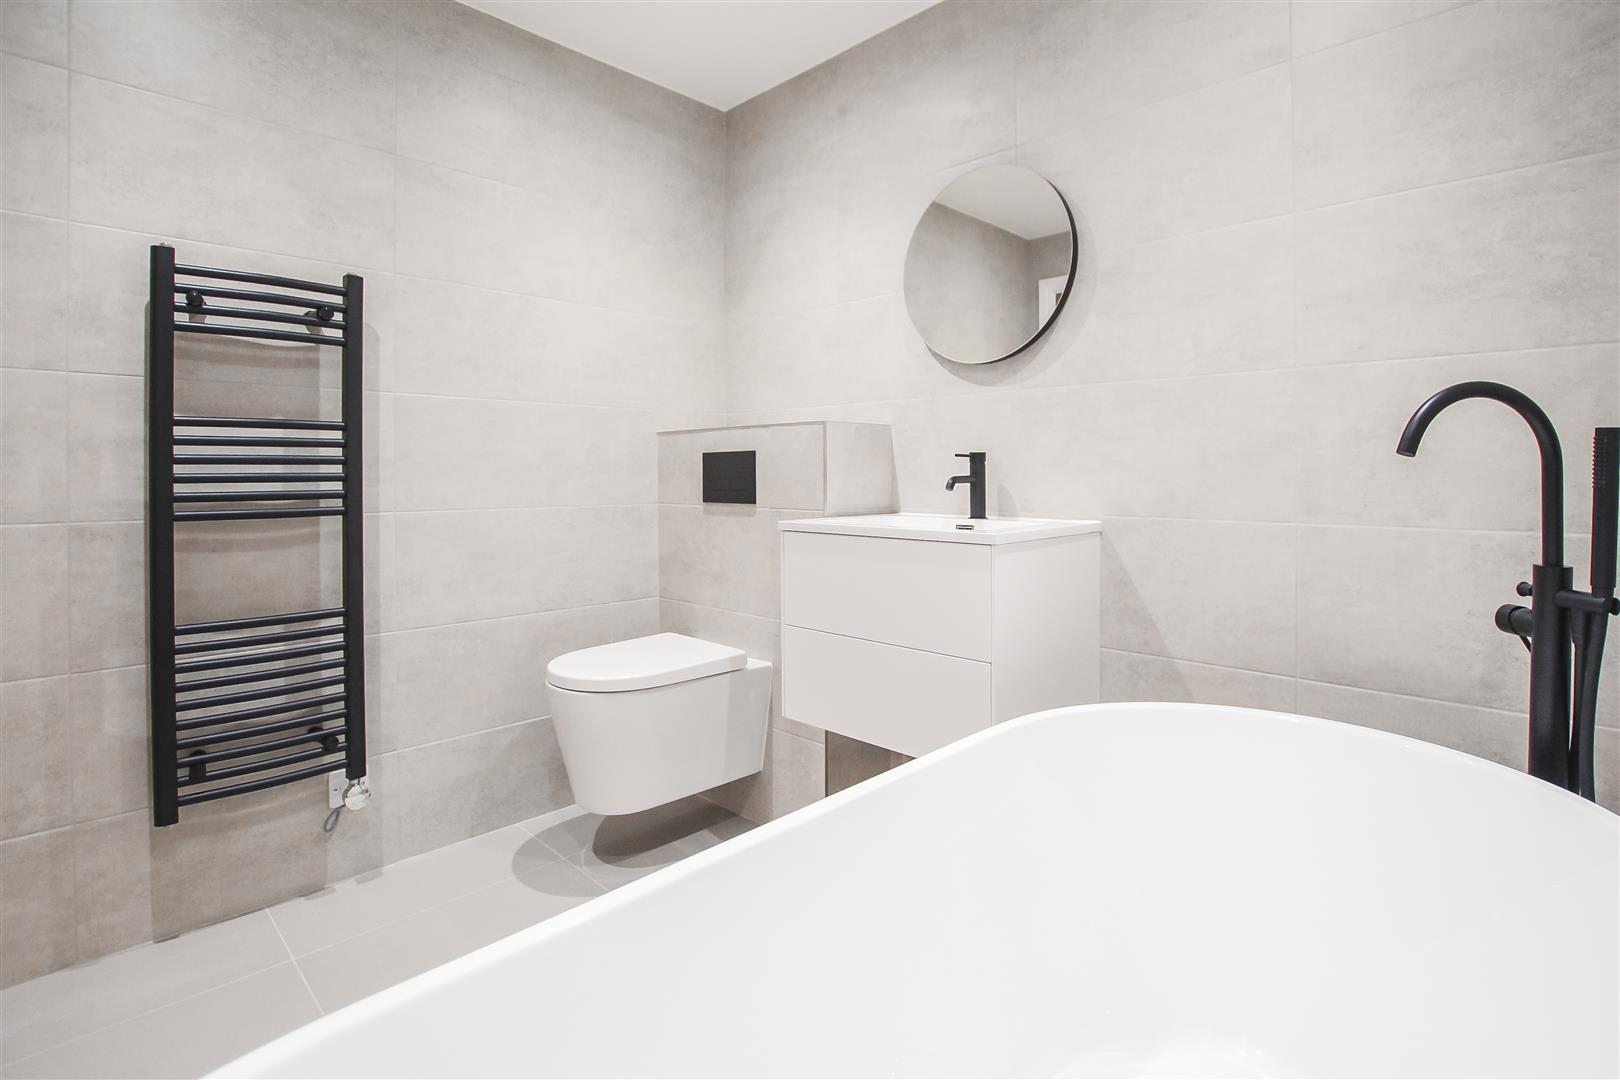 2 Bedroom Apartment For Sale - Image 17